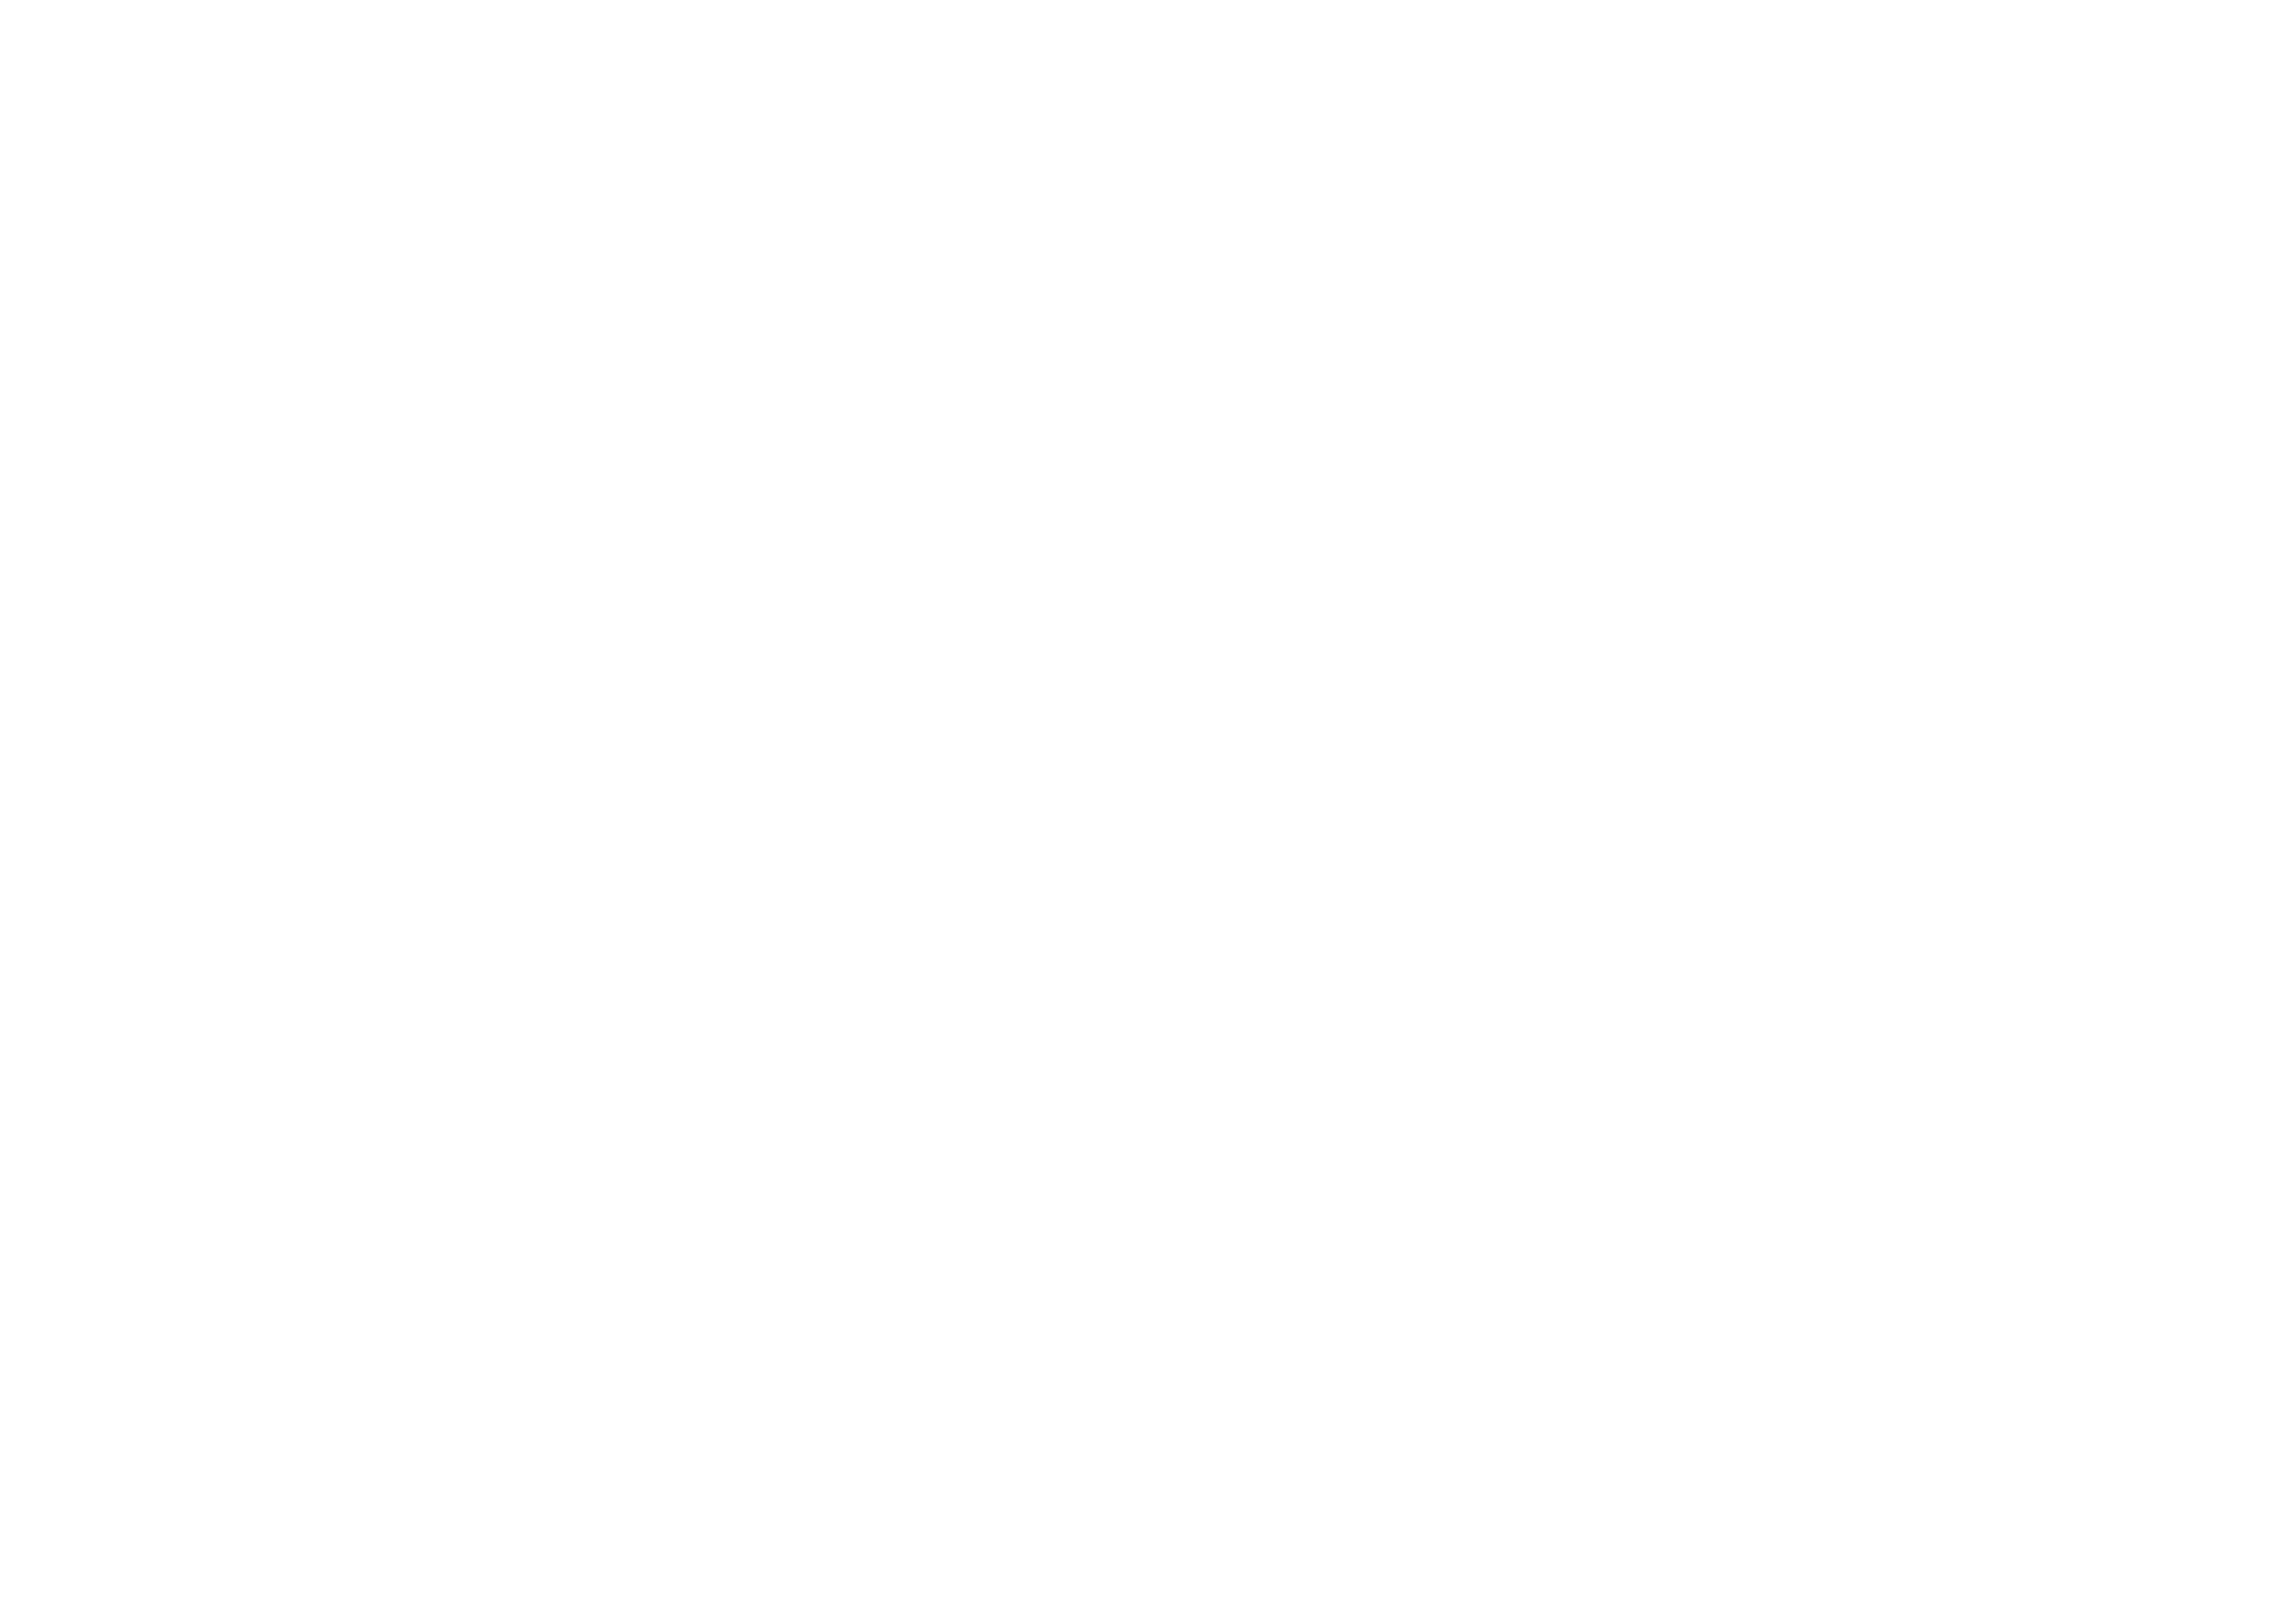 Tin Cup Golf at the Plaza